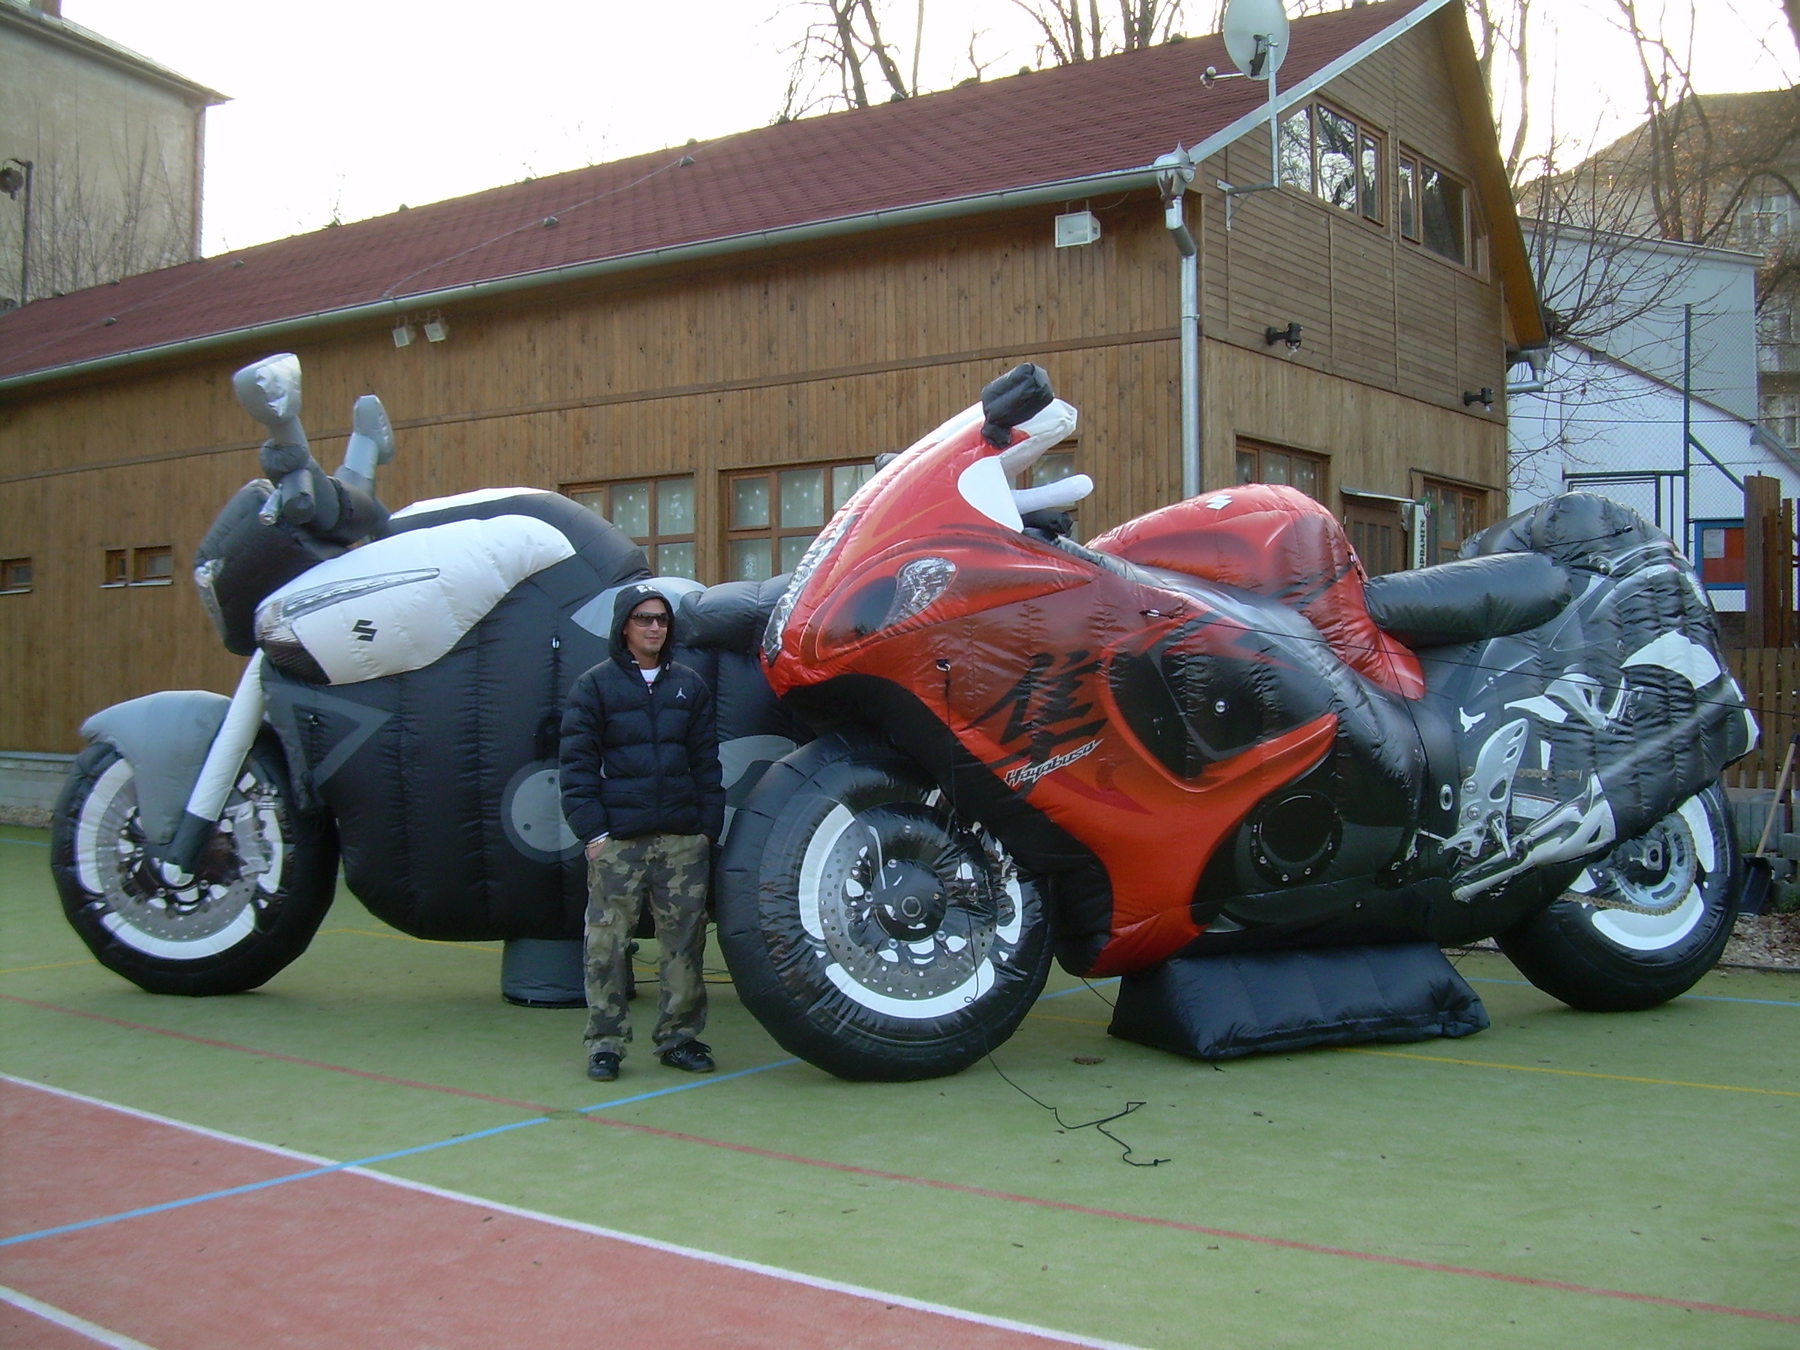 INFLATABLE MOTORCYCLES